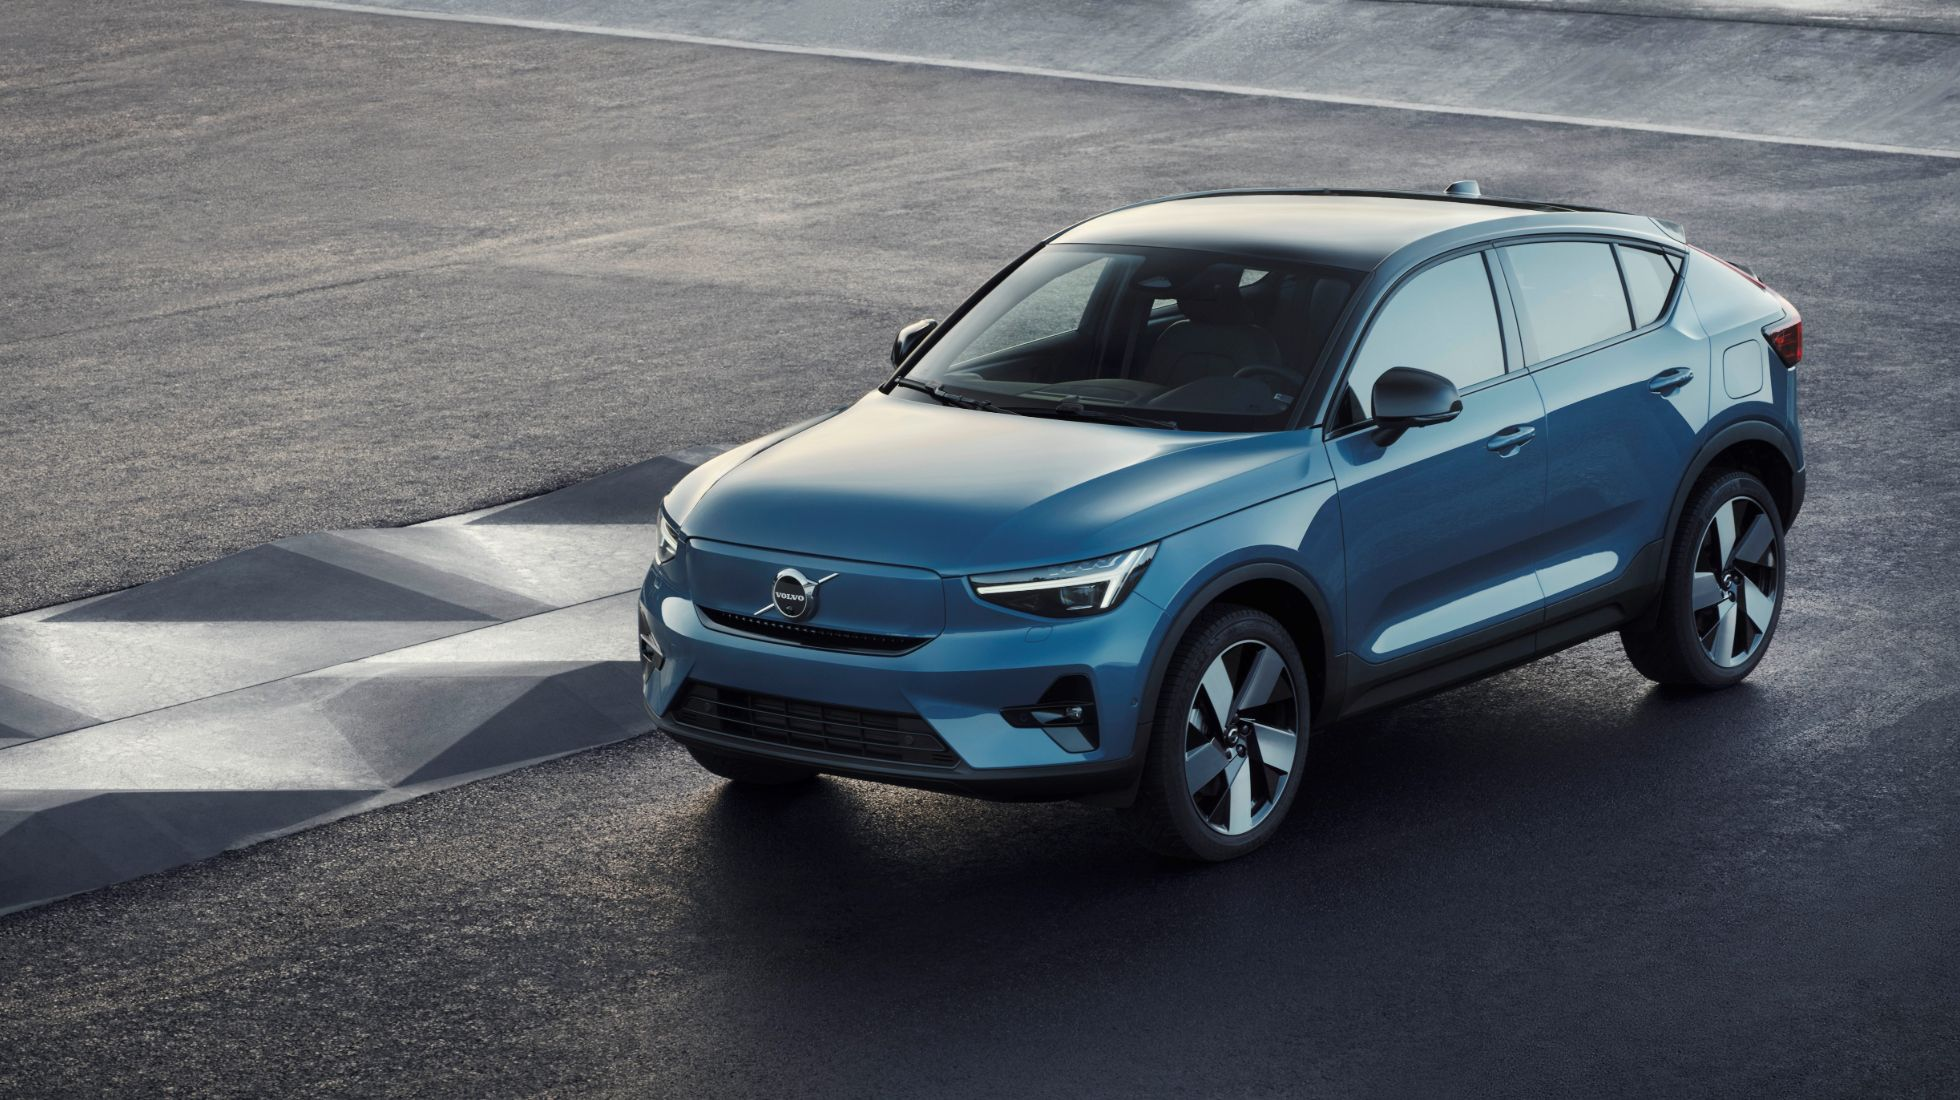 Volvo's C40 EV to go into production later this year